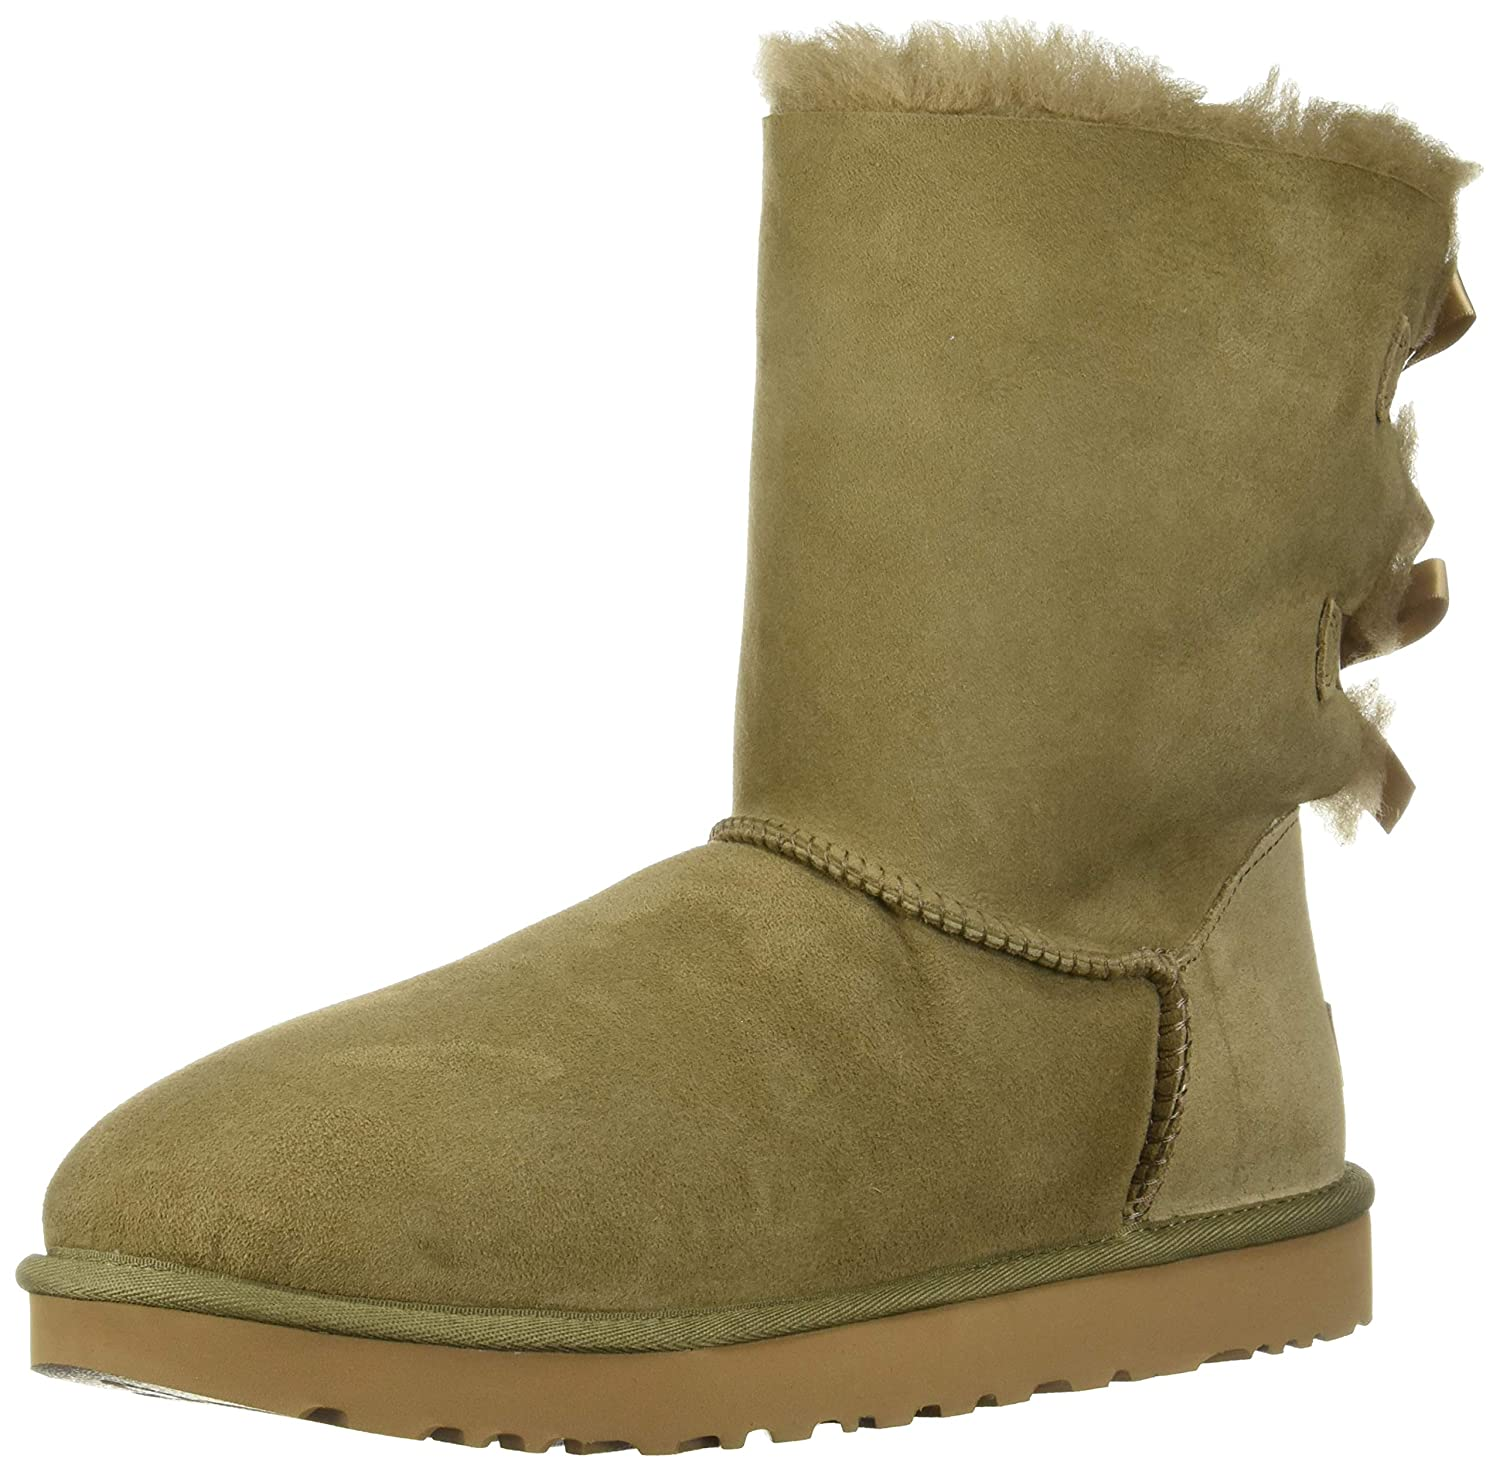 5f4fe4850b9 UGG Women's W Bailey Bow Ii Fashion Boot